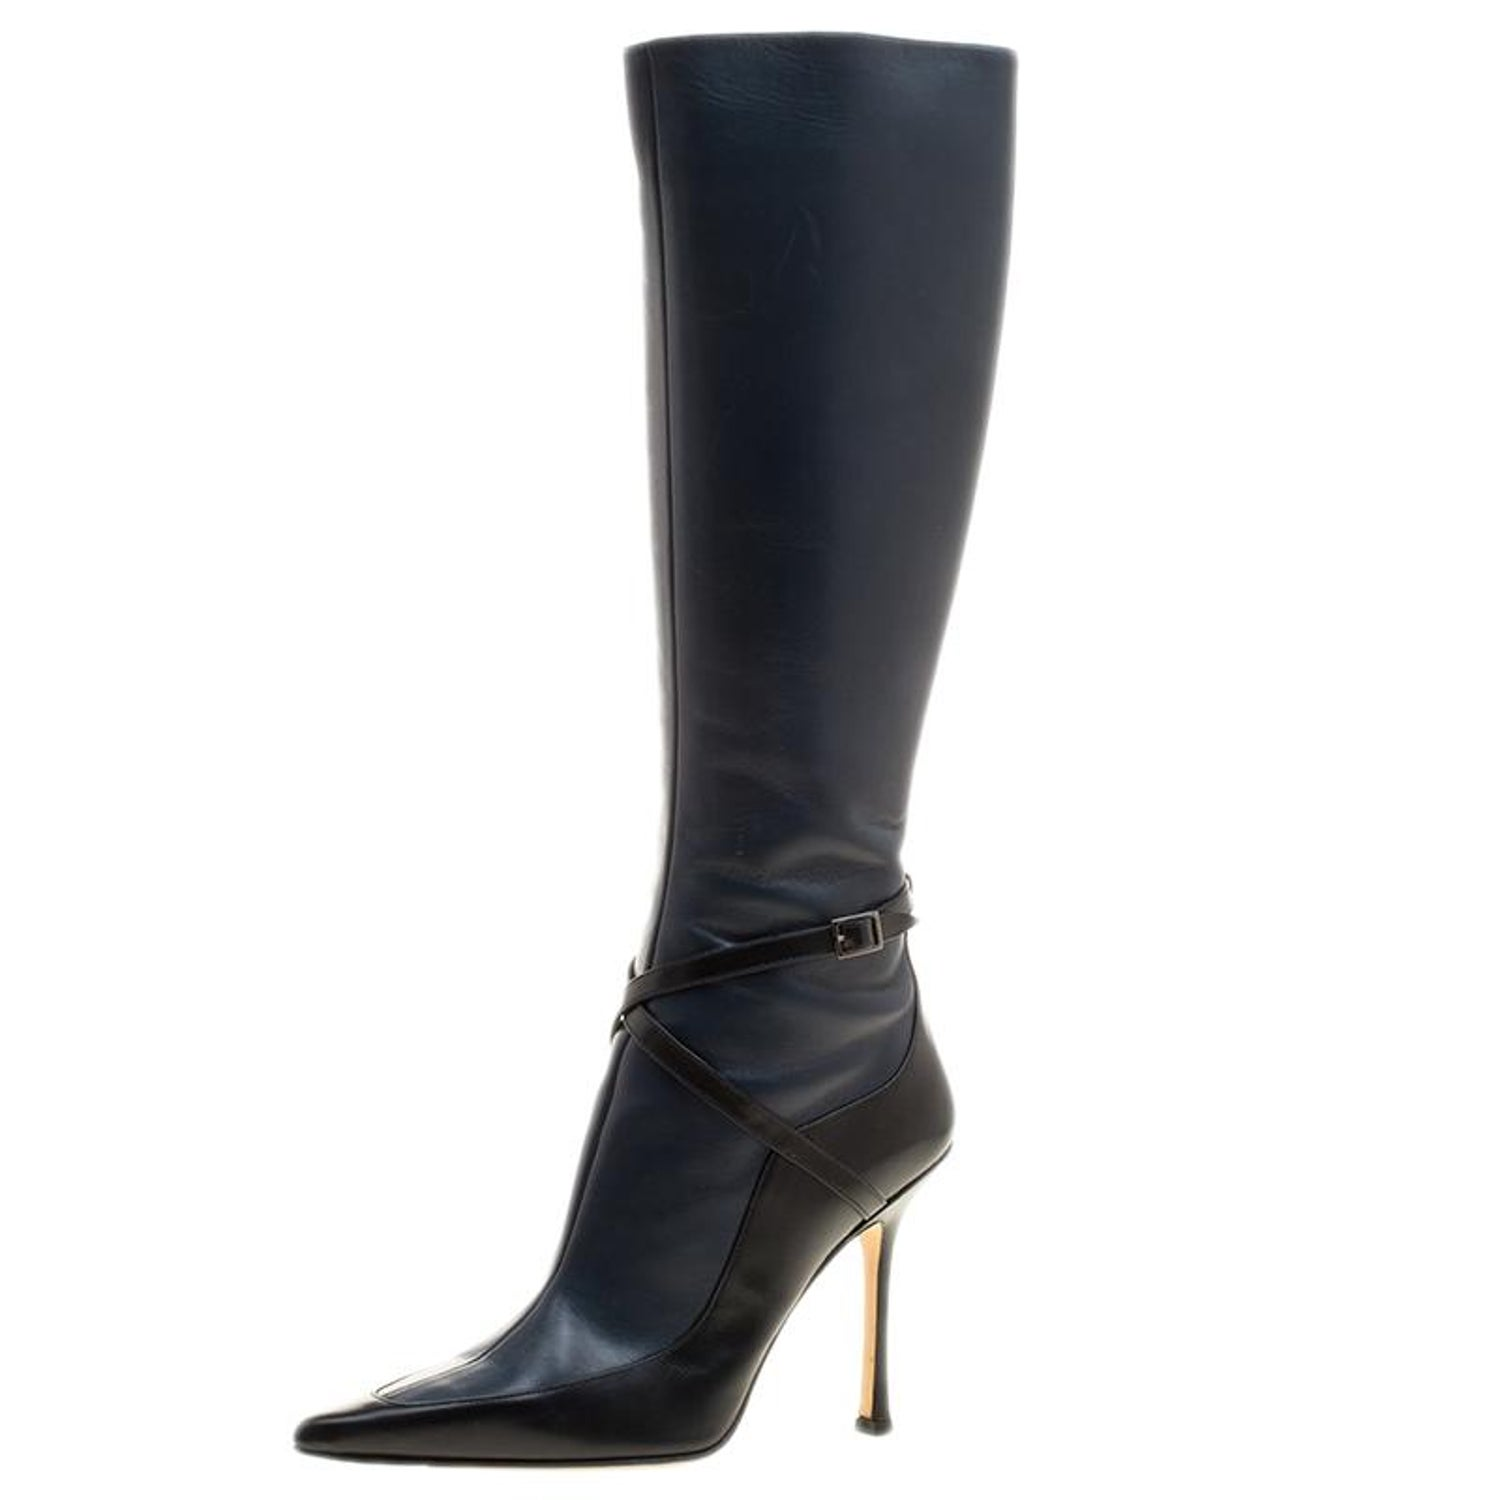 116a55135ae2 Jimmy Choo Black And Blue Leather Award Knee High Pointed Toe Boots Size 40  at 1stdibs